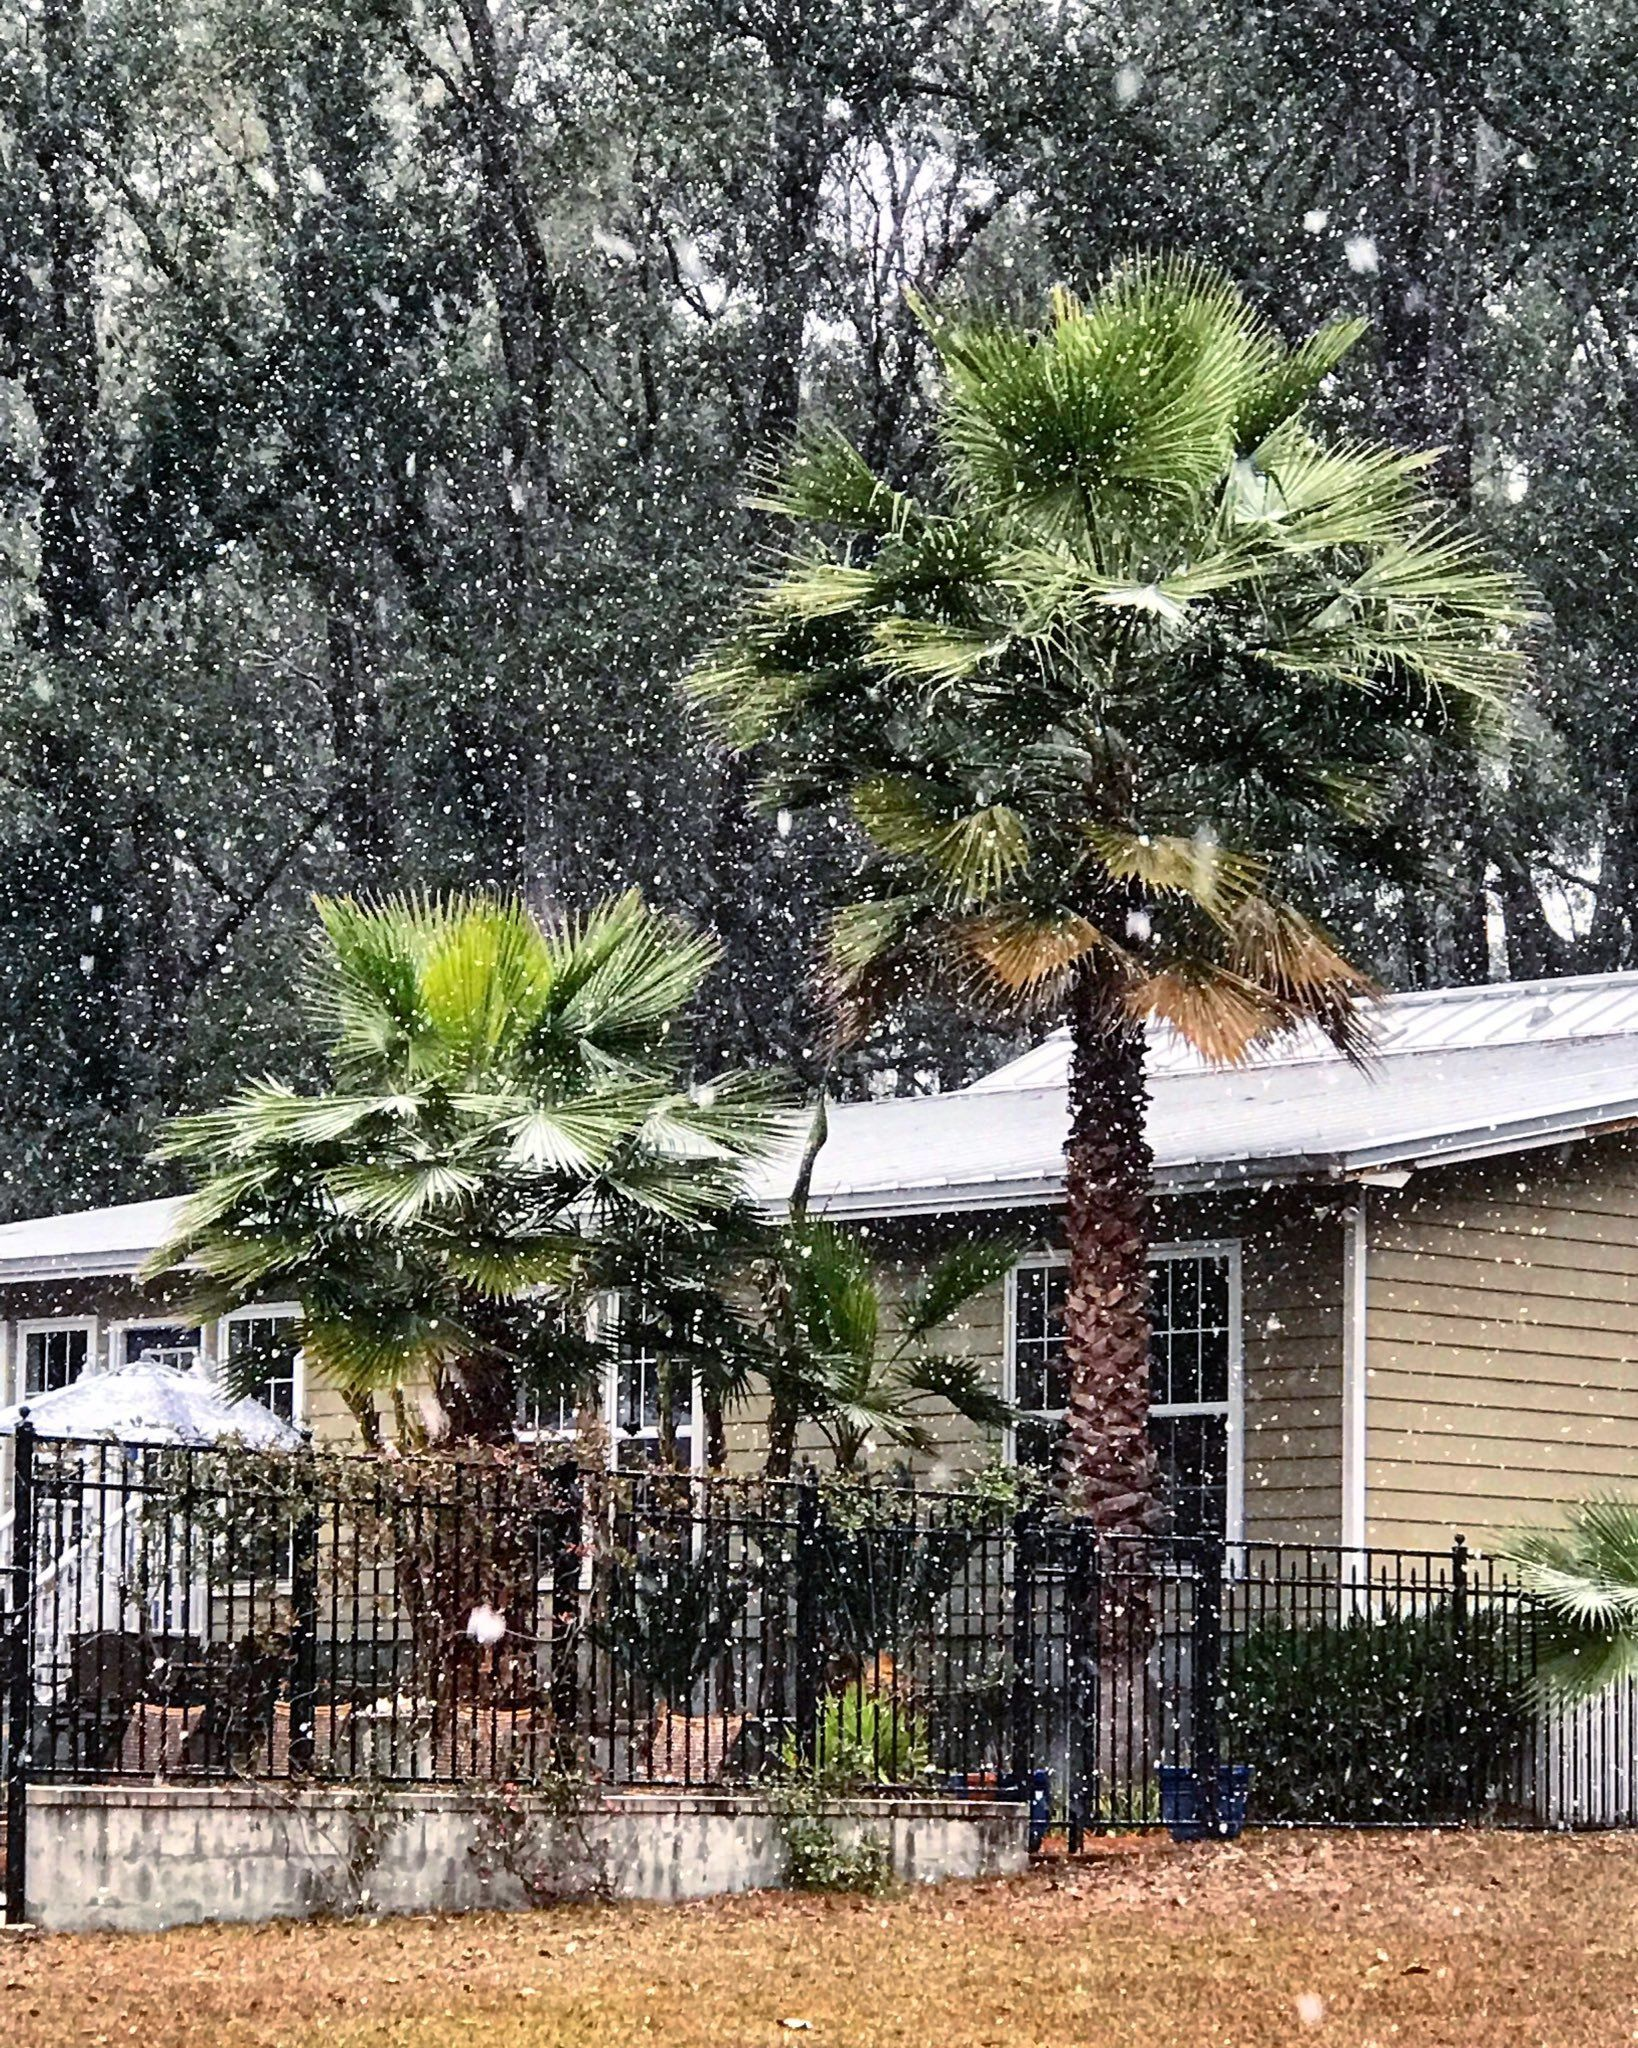 Snow in Florida: Tallahassee sees first significant snow since 1989